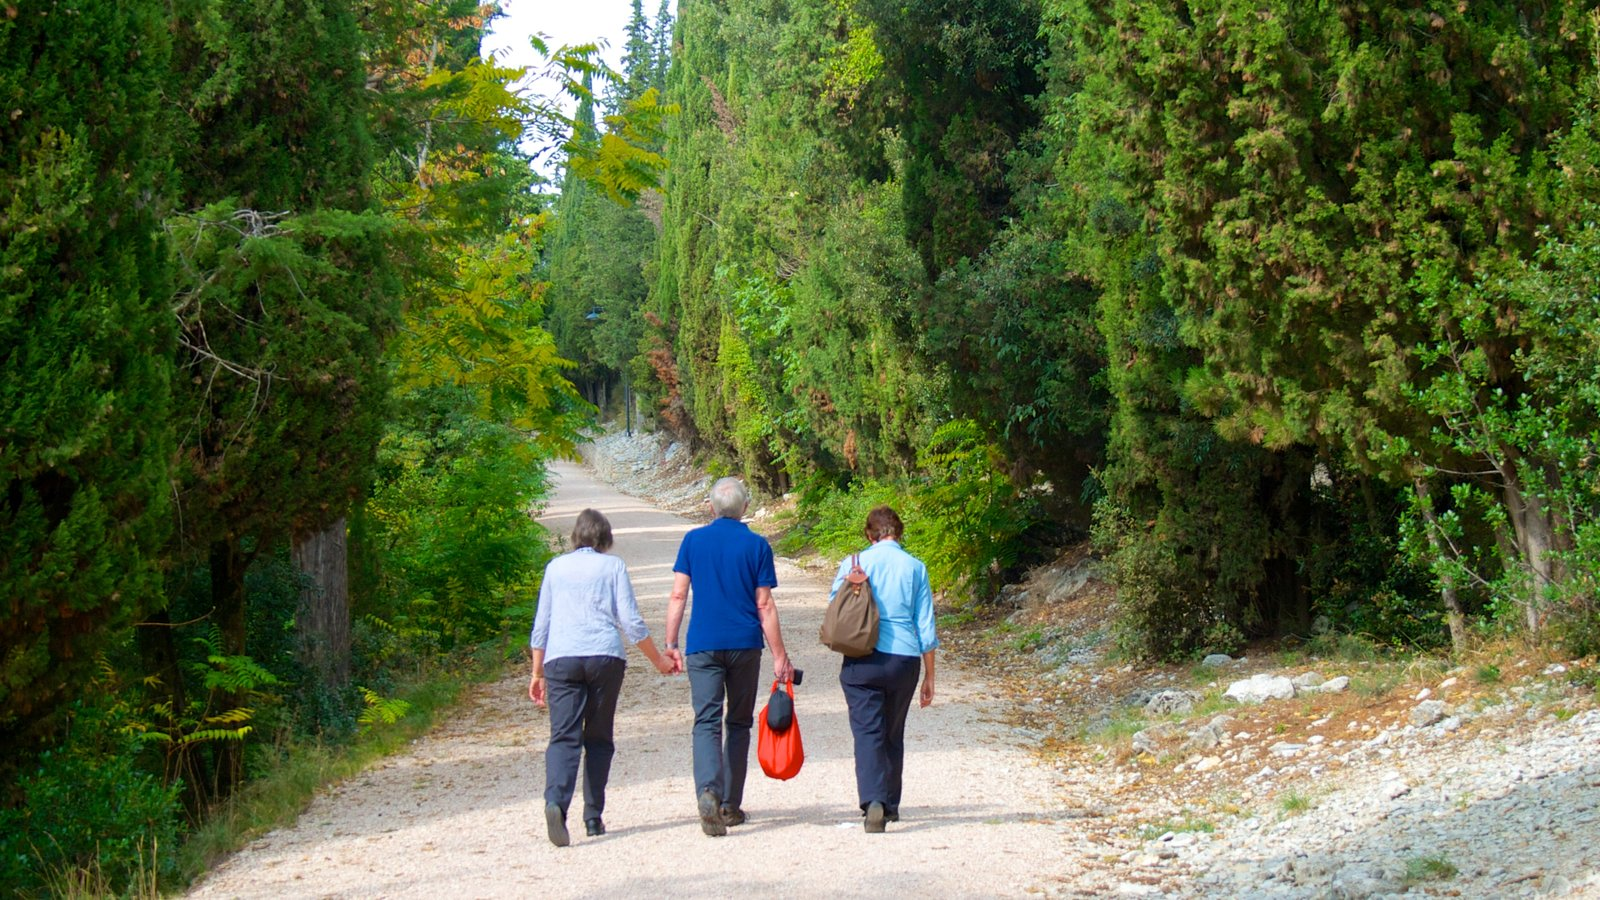 Gubbio which includes hiking or walking and forest scenes as well as a small group of people